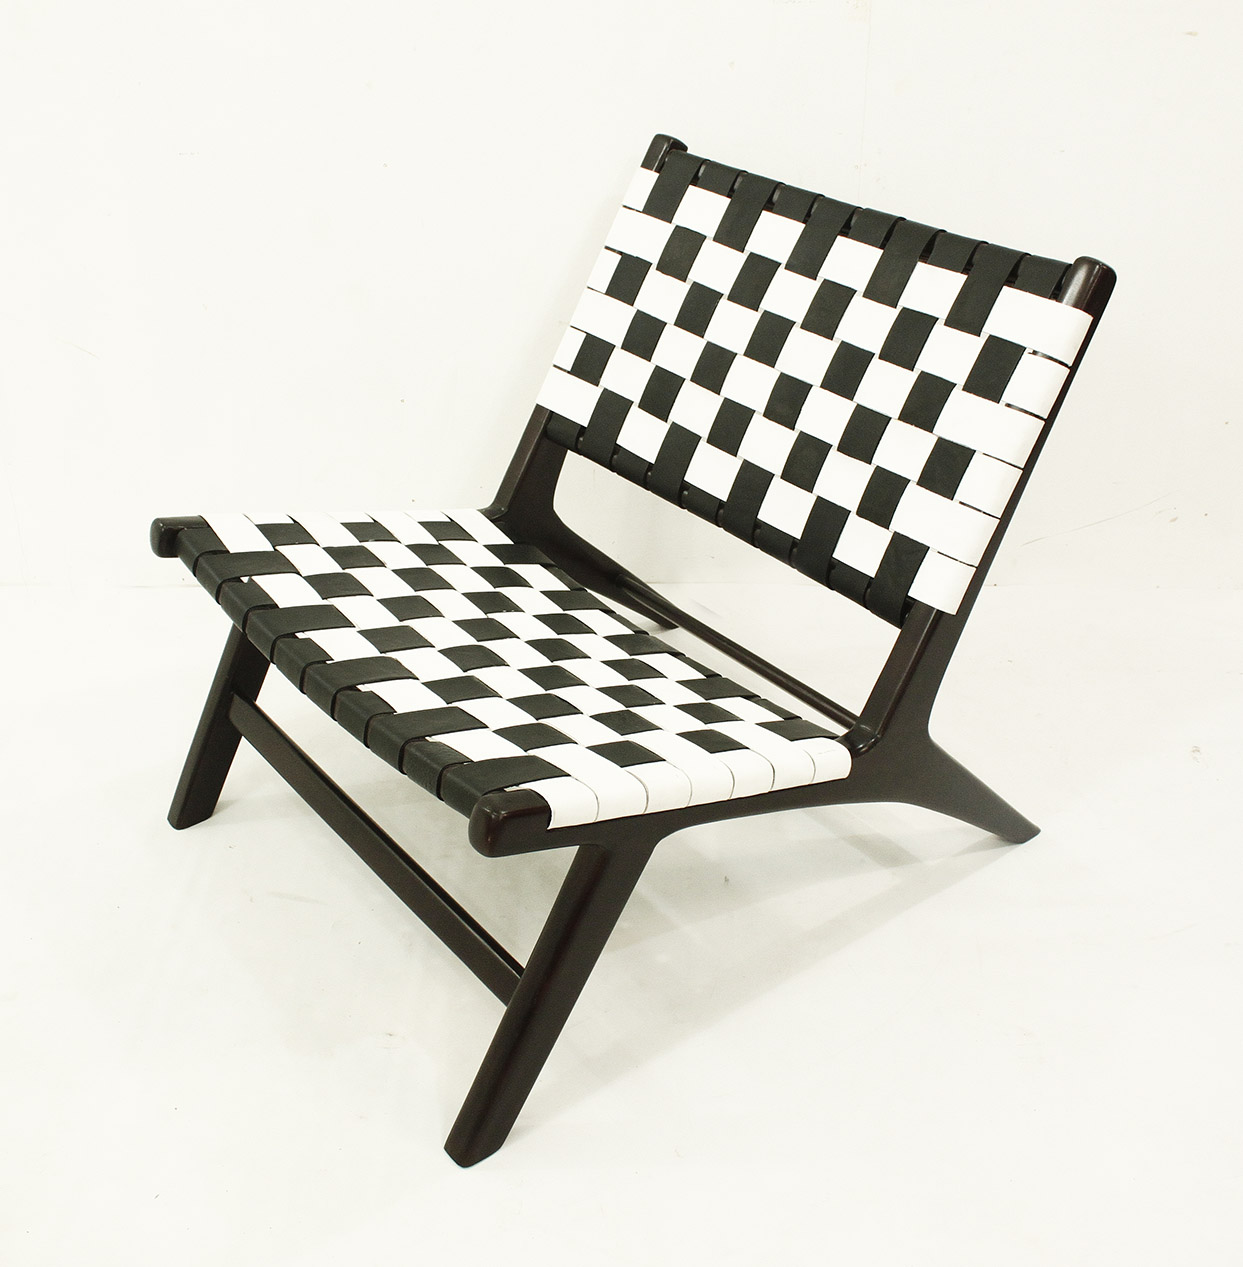 Chaise Noir Blanc Of Chaise Noir Blanc Los Angeles Los Angeles Zwart Wit